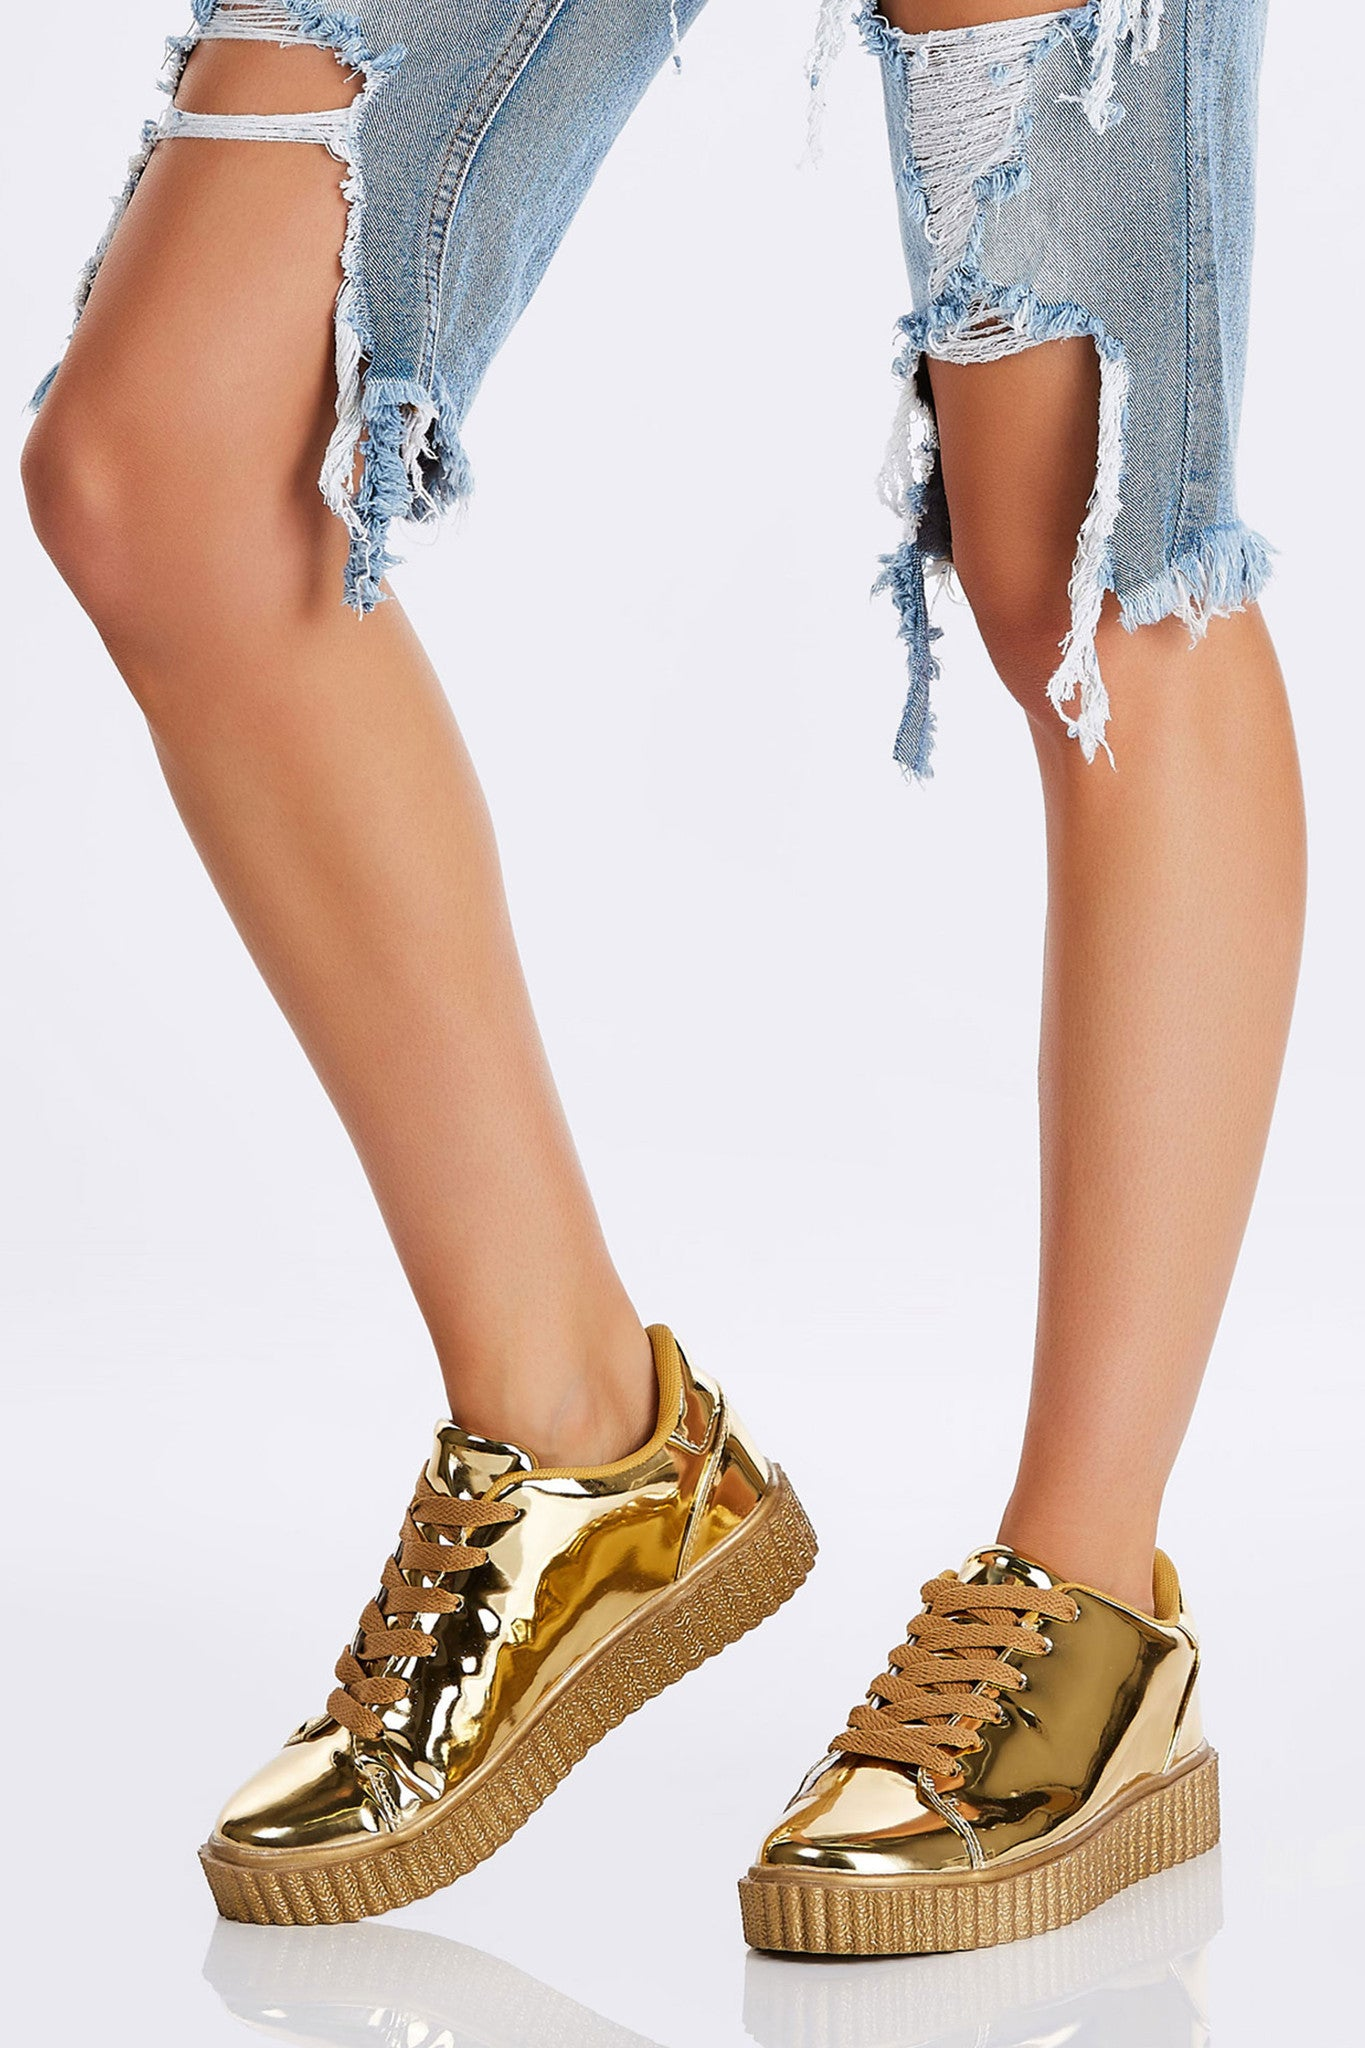 "A dope pair of kicks with a ""touch"" of bling. Comfortable platforms for the trendy creeper style finish. An effortless way to add some height and funk to your look."